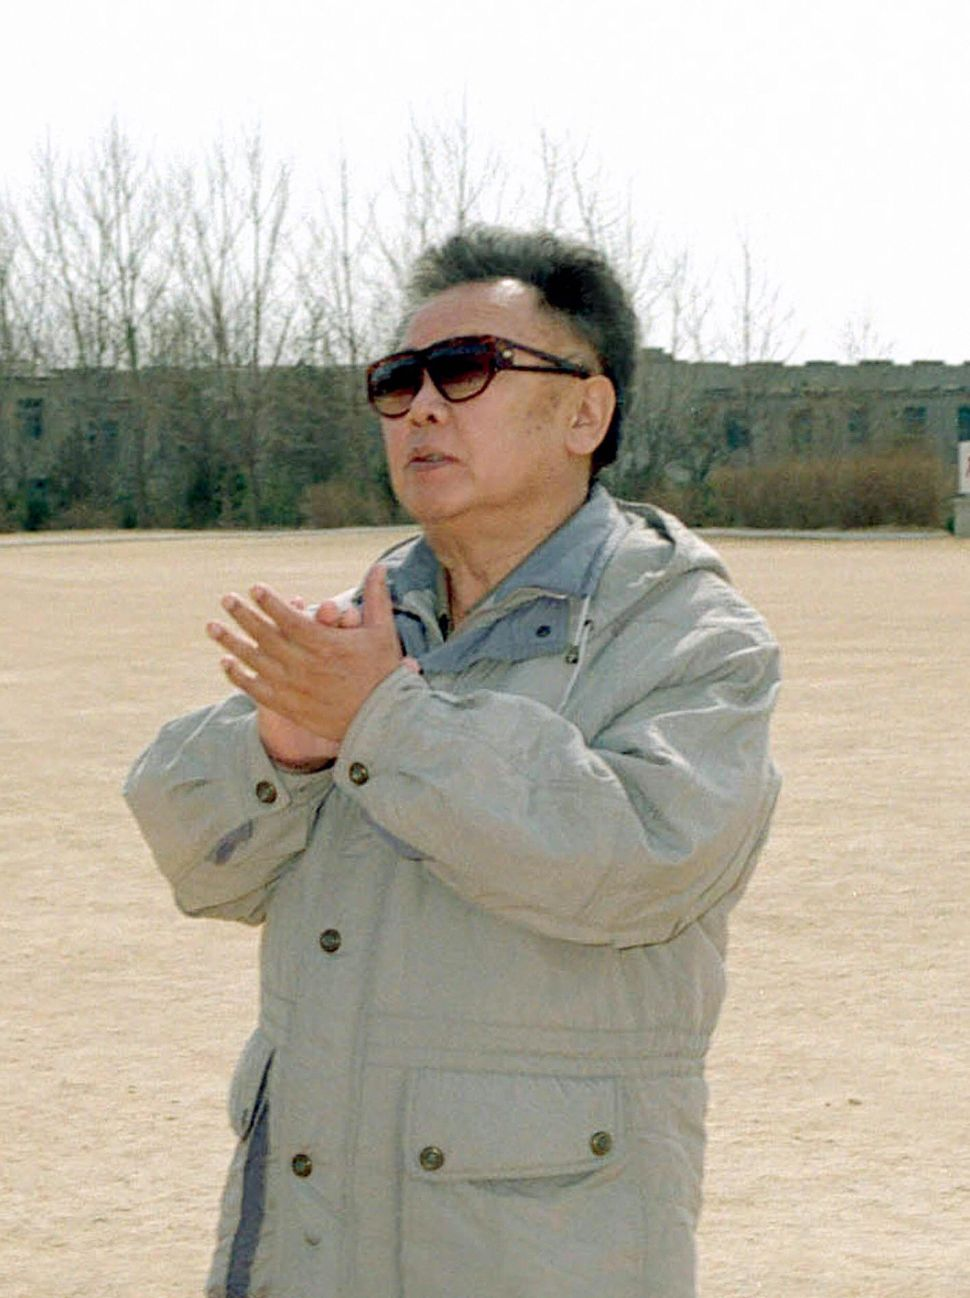 North Korean Leader Kim Jong Il Announced Dead at 69; Unsure Future For Everything Now